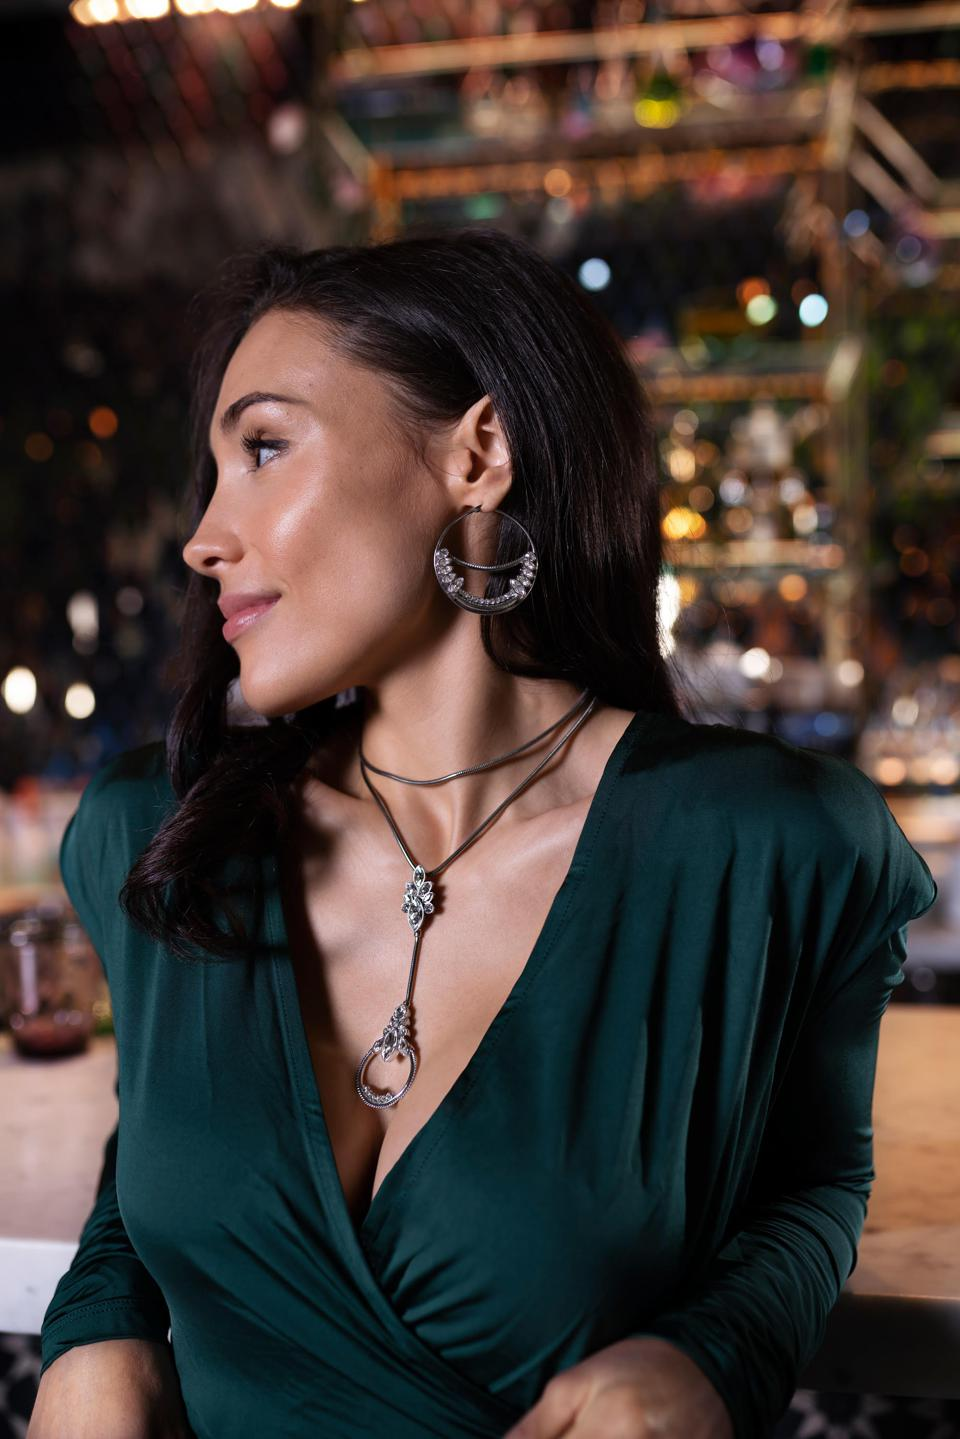 Female Model: Alexandra Beaulieu. The Bomonti necklace is a modern piece that will bring joy, confidence, and sparkle to women of all ages and backgrounds.